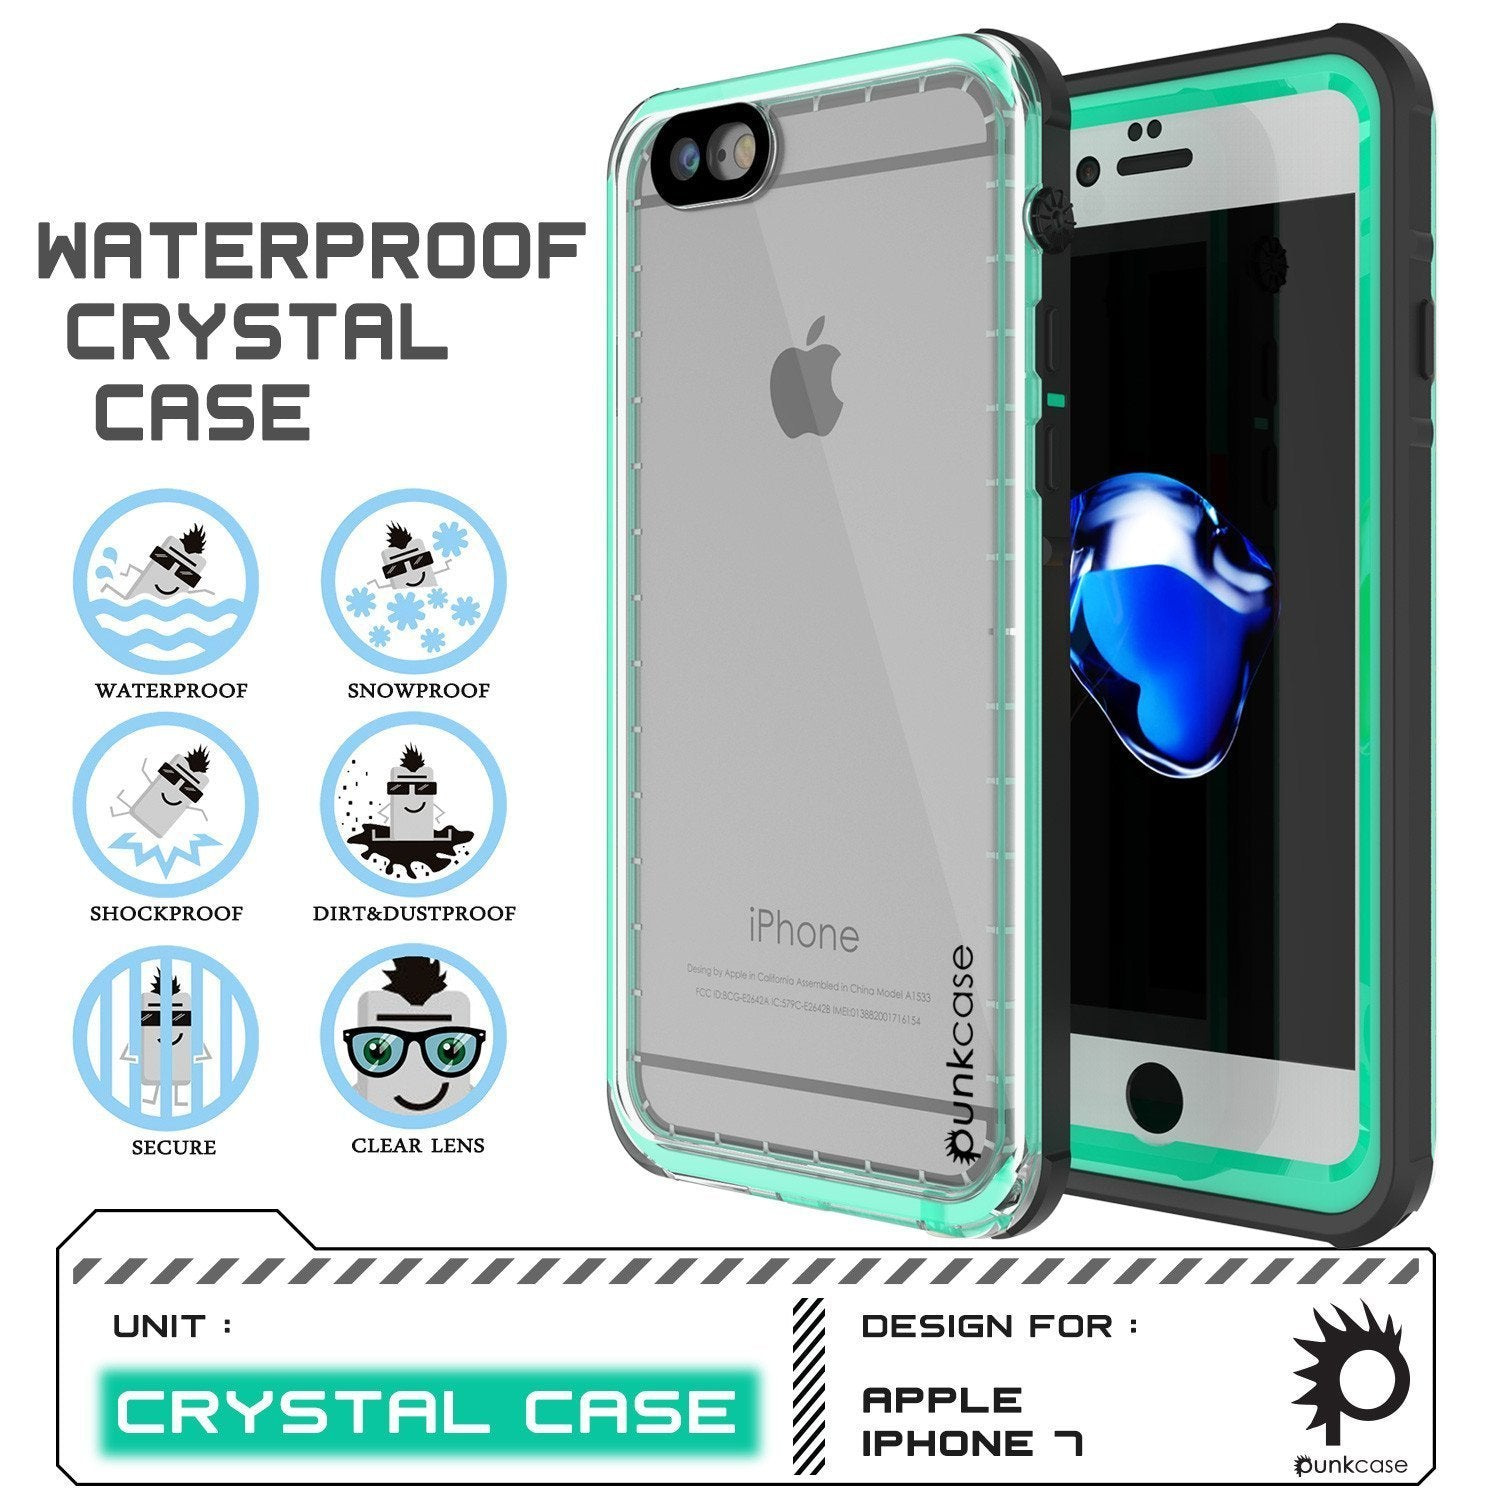 "Apple iPhone SE (4.7"") Waterproof Case, PUNKcase CRYSTAL Teal W/ Attached Screen Protector  